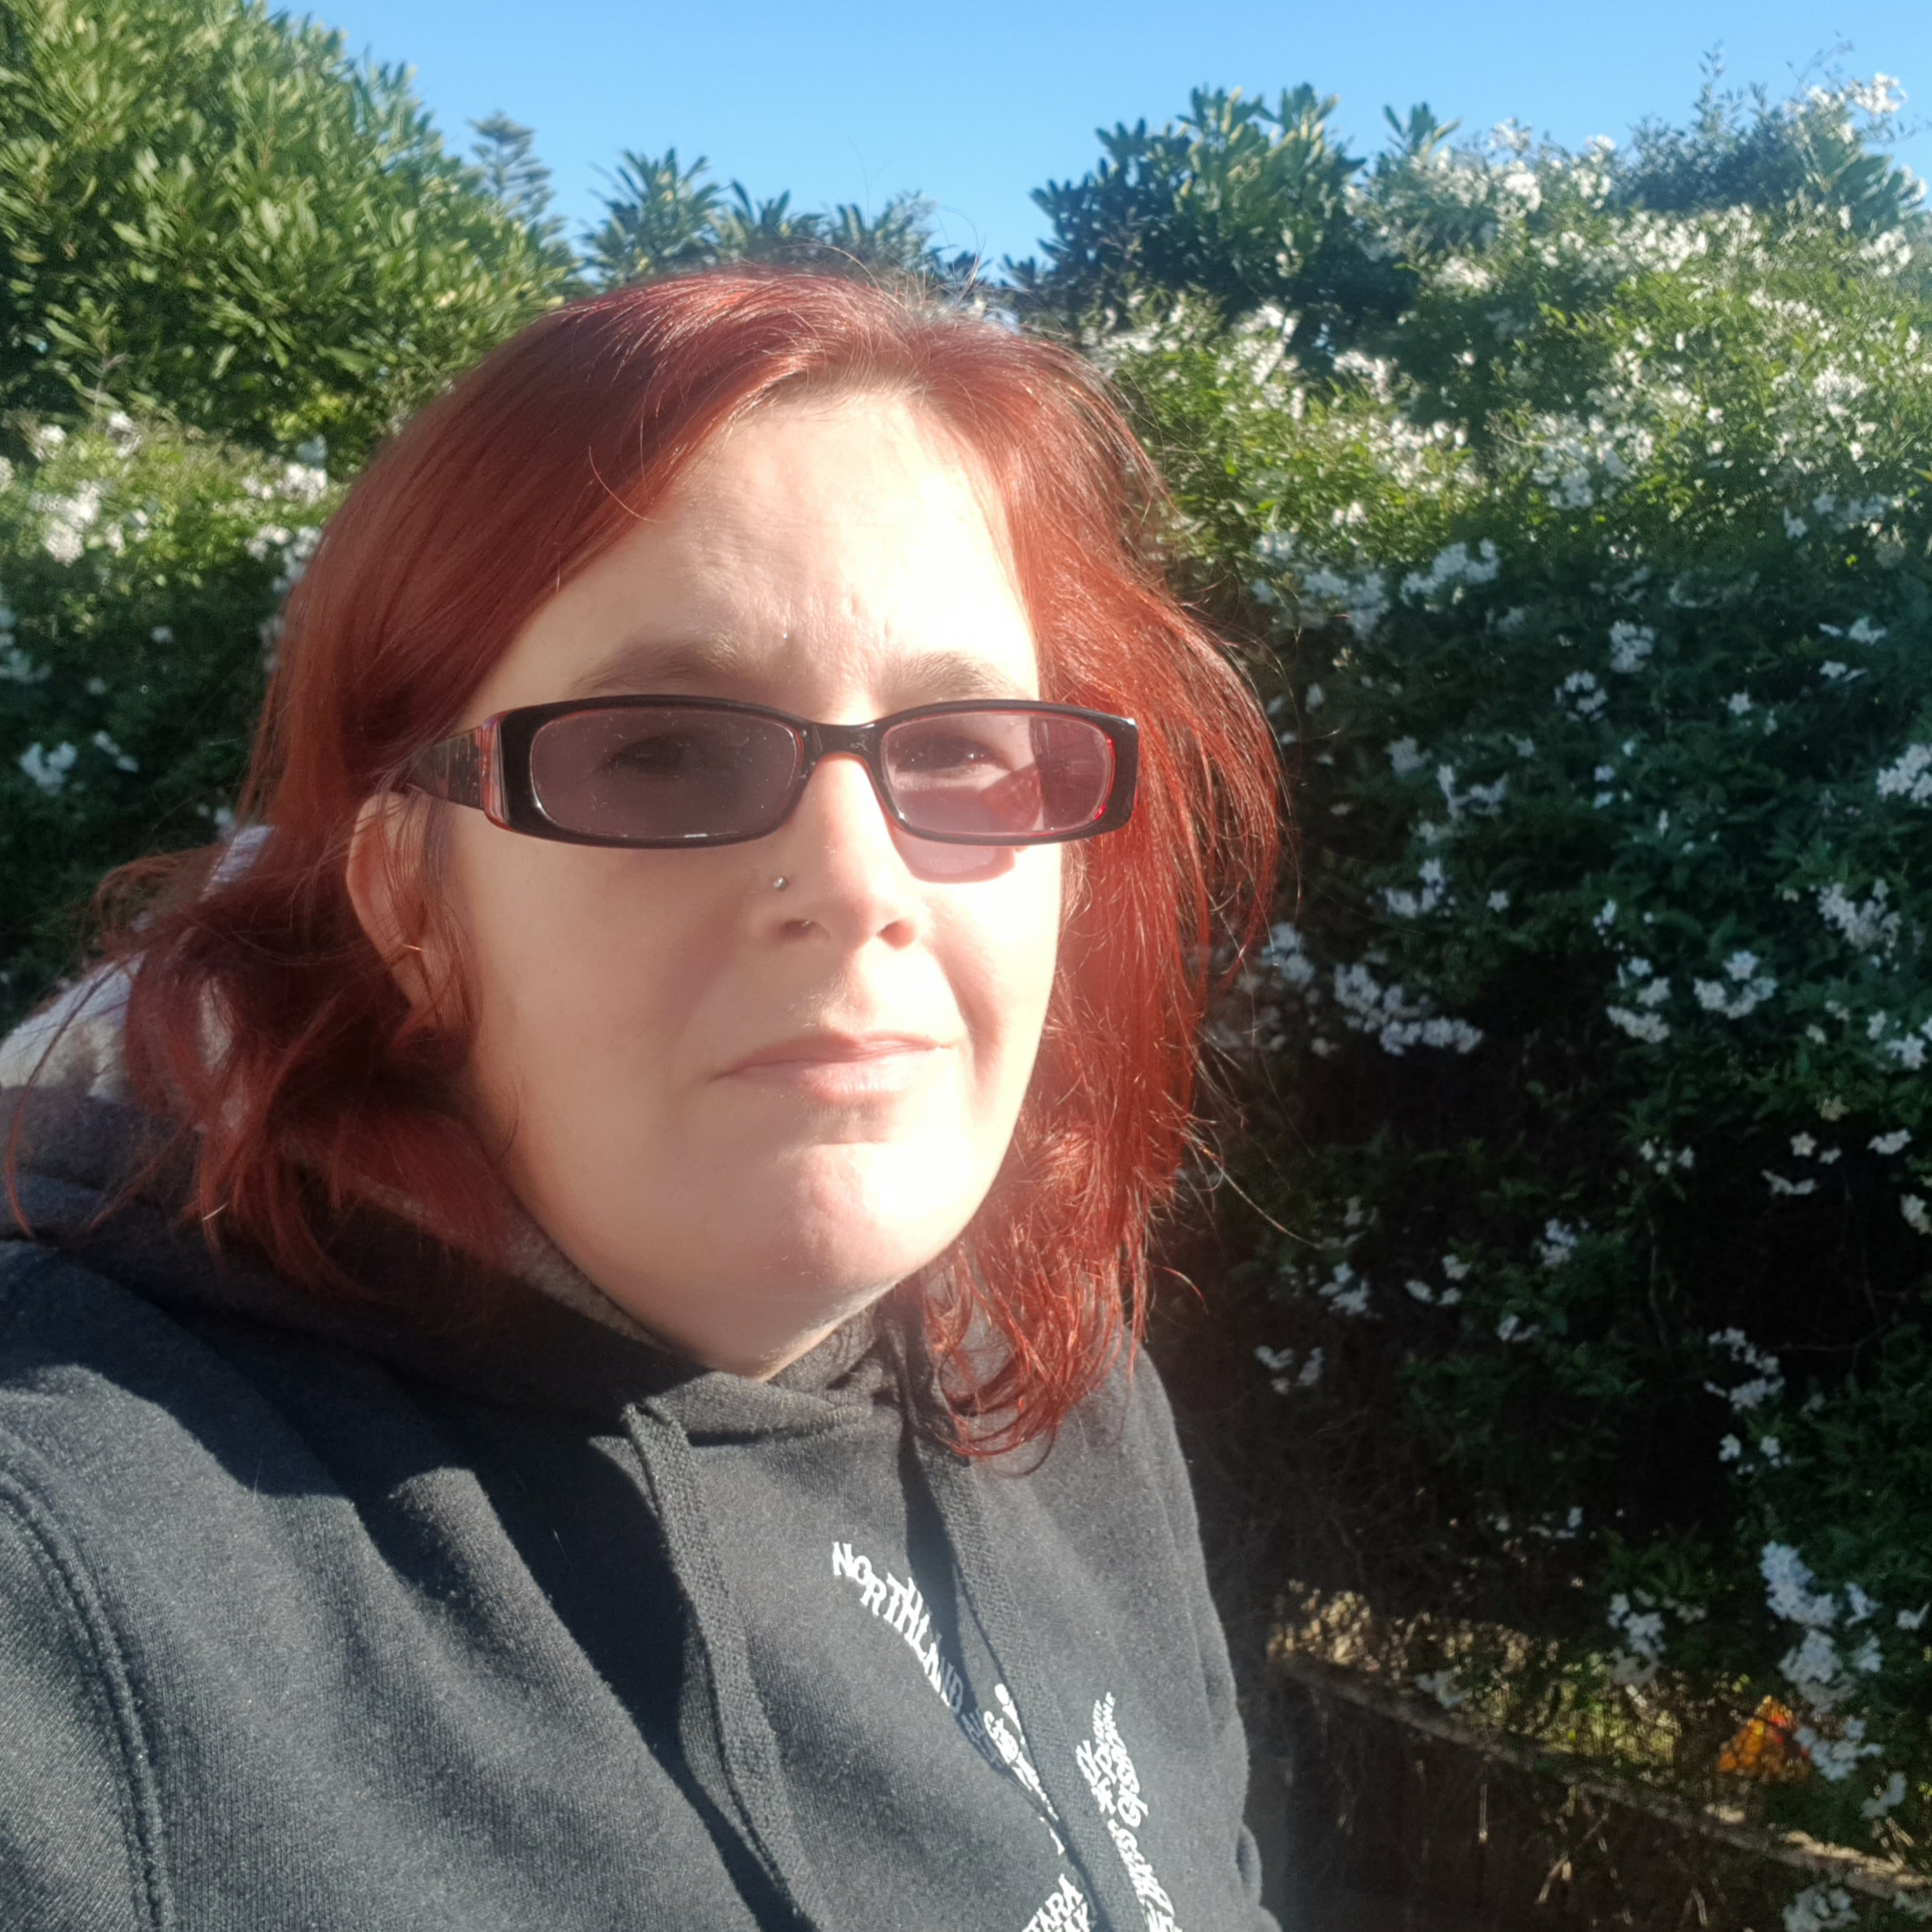 kitty fitton wearing glasses looking hopeful against a backdrop of clear blue sky and flowering jasmine.